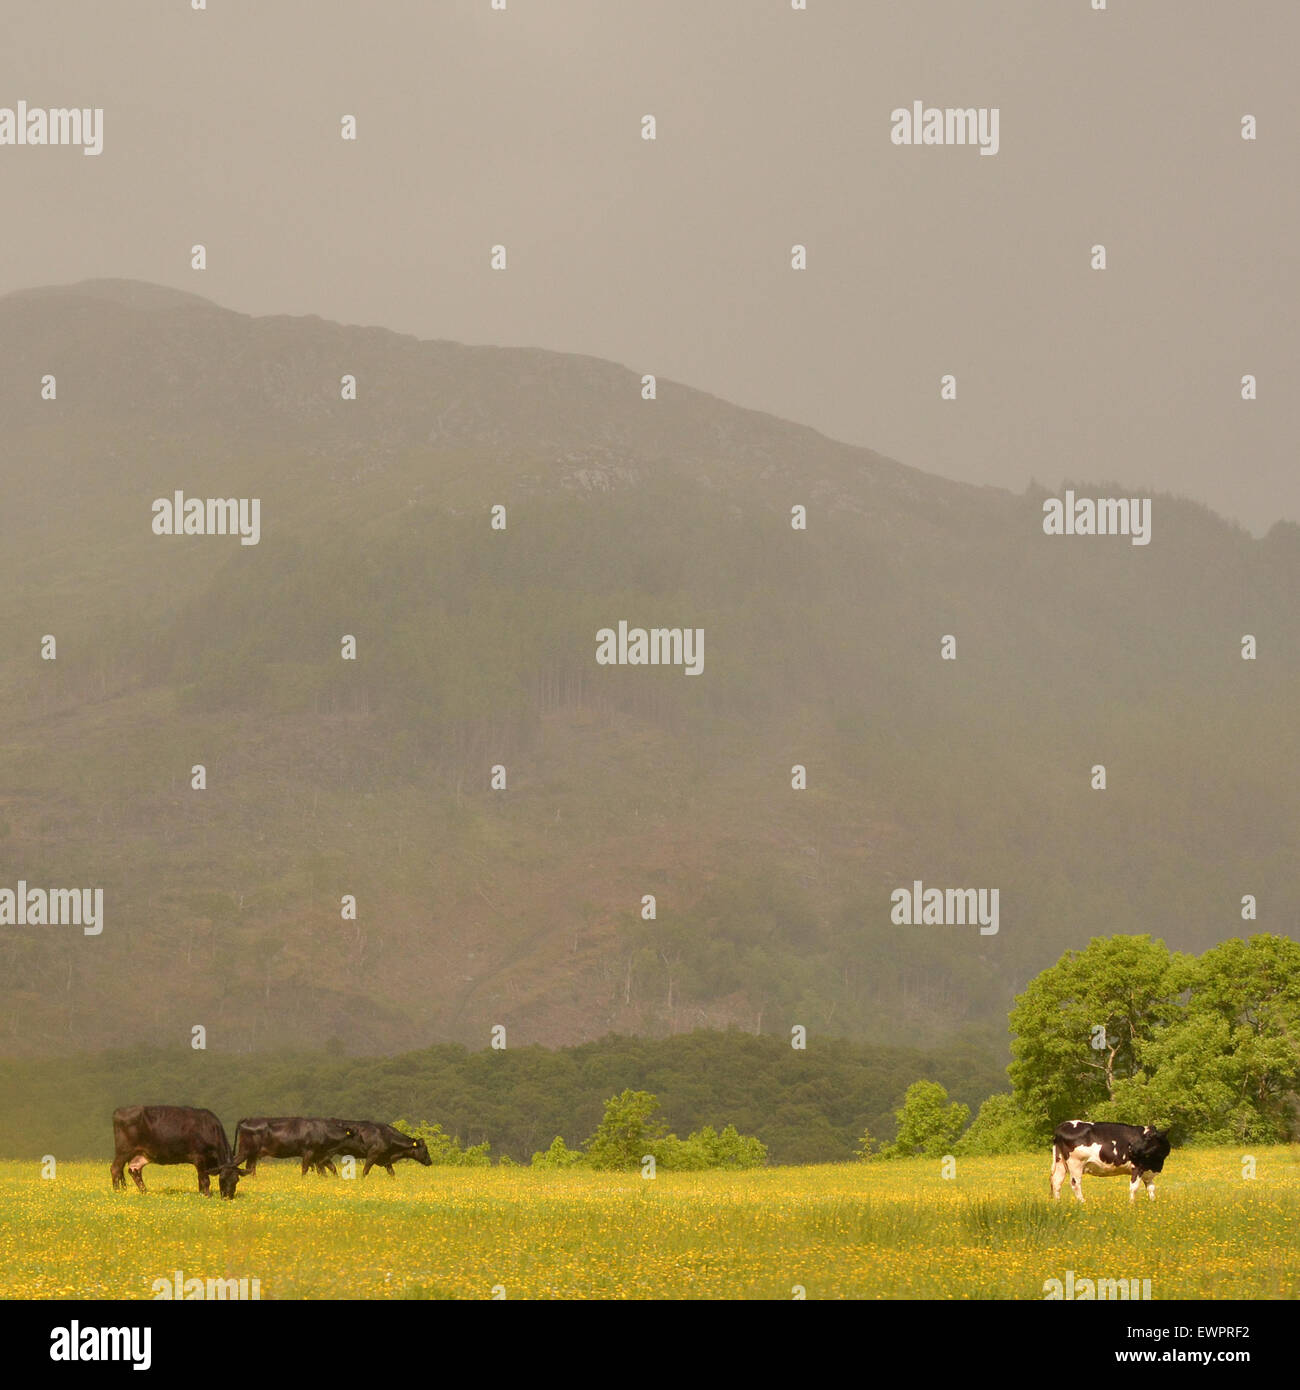 cows in field of buttercups illuminated by late afternoon summer light - Scotland, UK - Stock Image